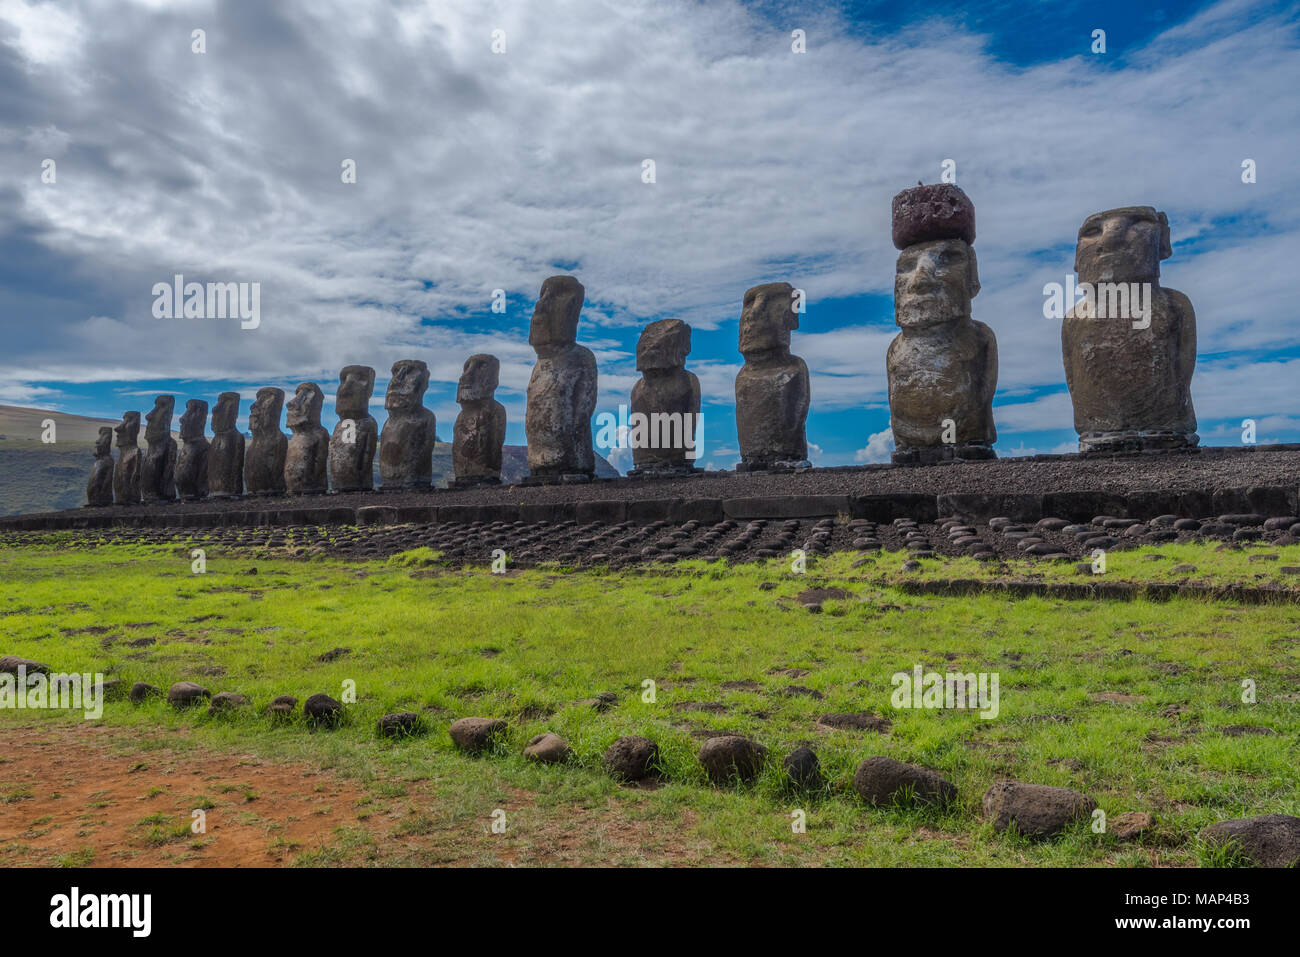 Wide angle shot of 15 Moai statues facing inward over Easter Island at Tongariki with a dramatic white cloud and blue sky background. - Stock Image